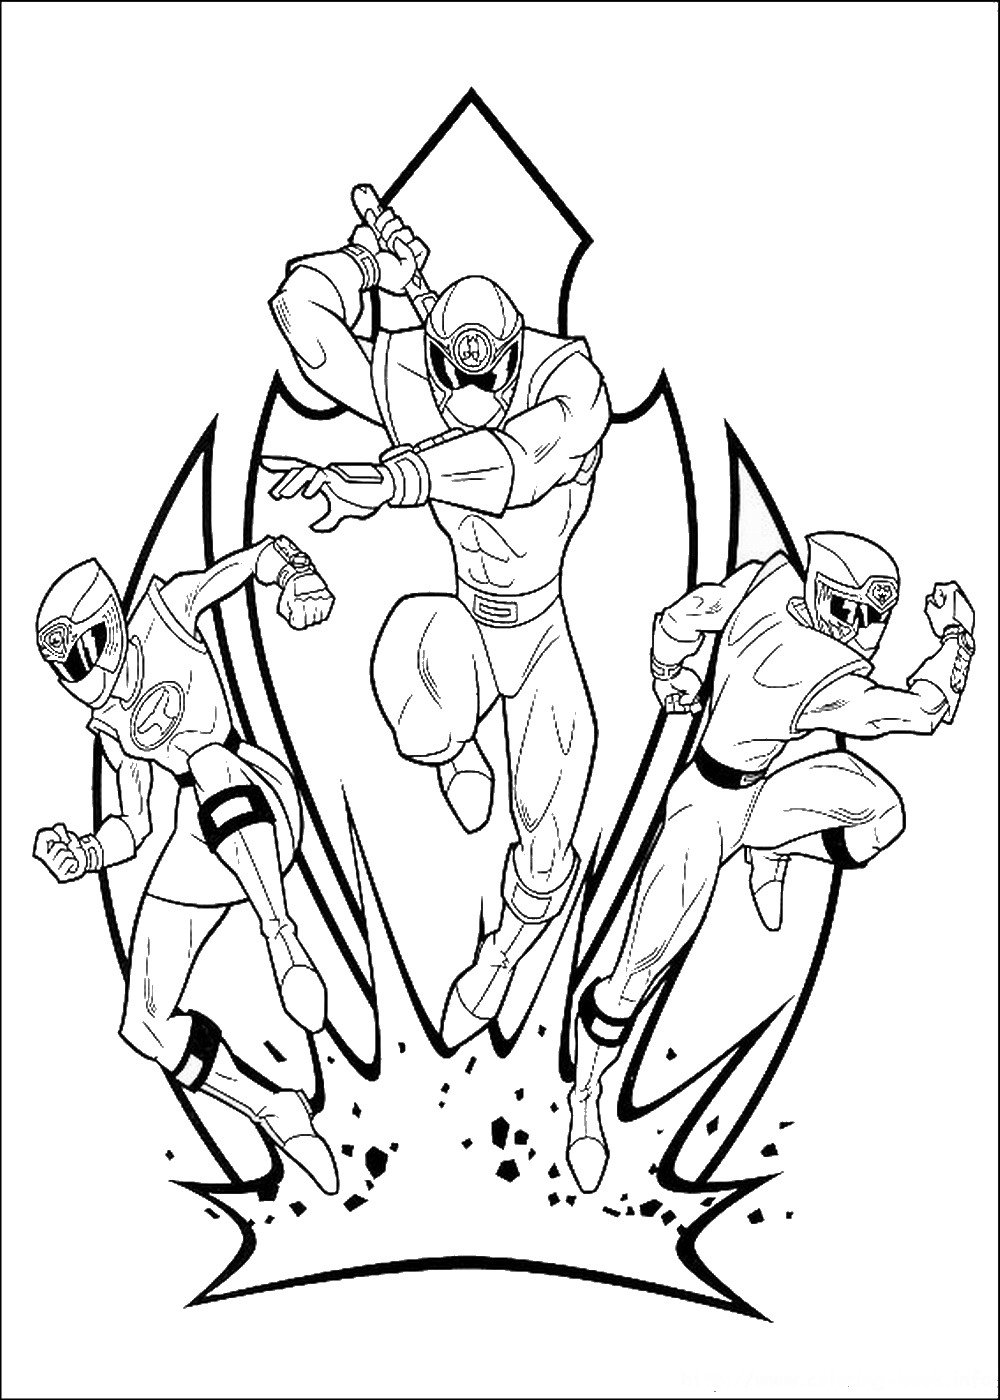 power rangers color pages power rangers coloring pages download and print power power pages rangers color 1 1